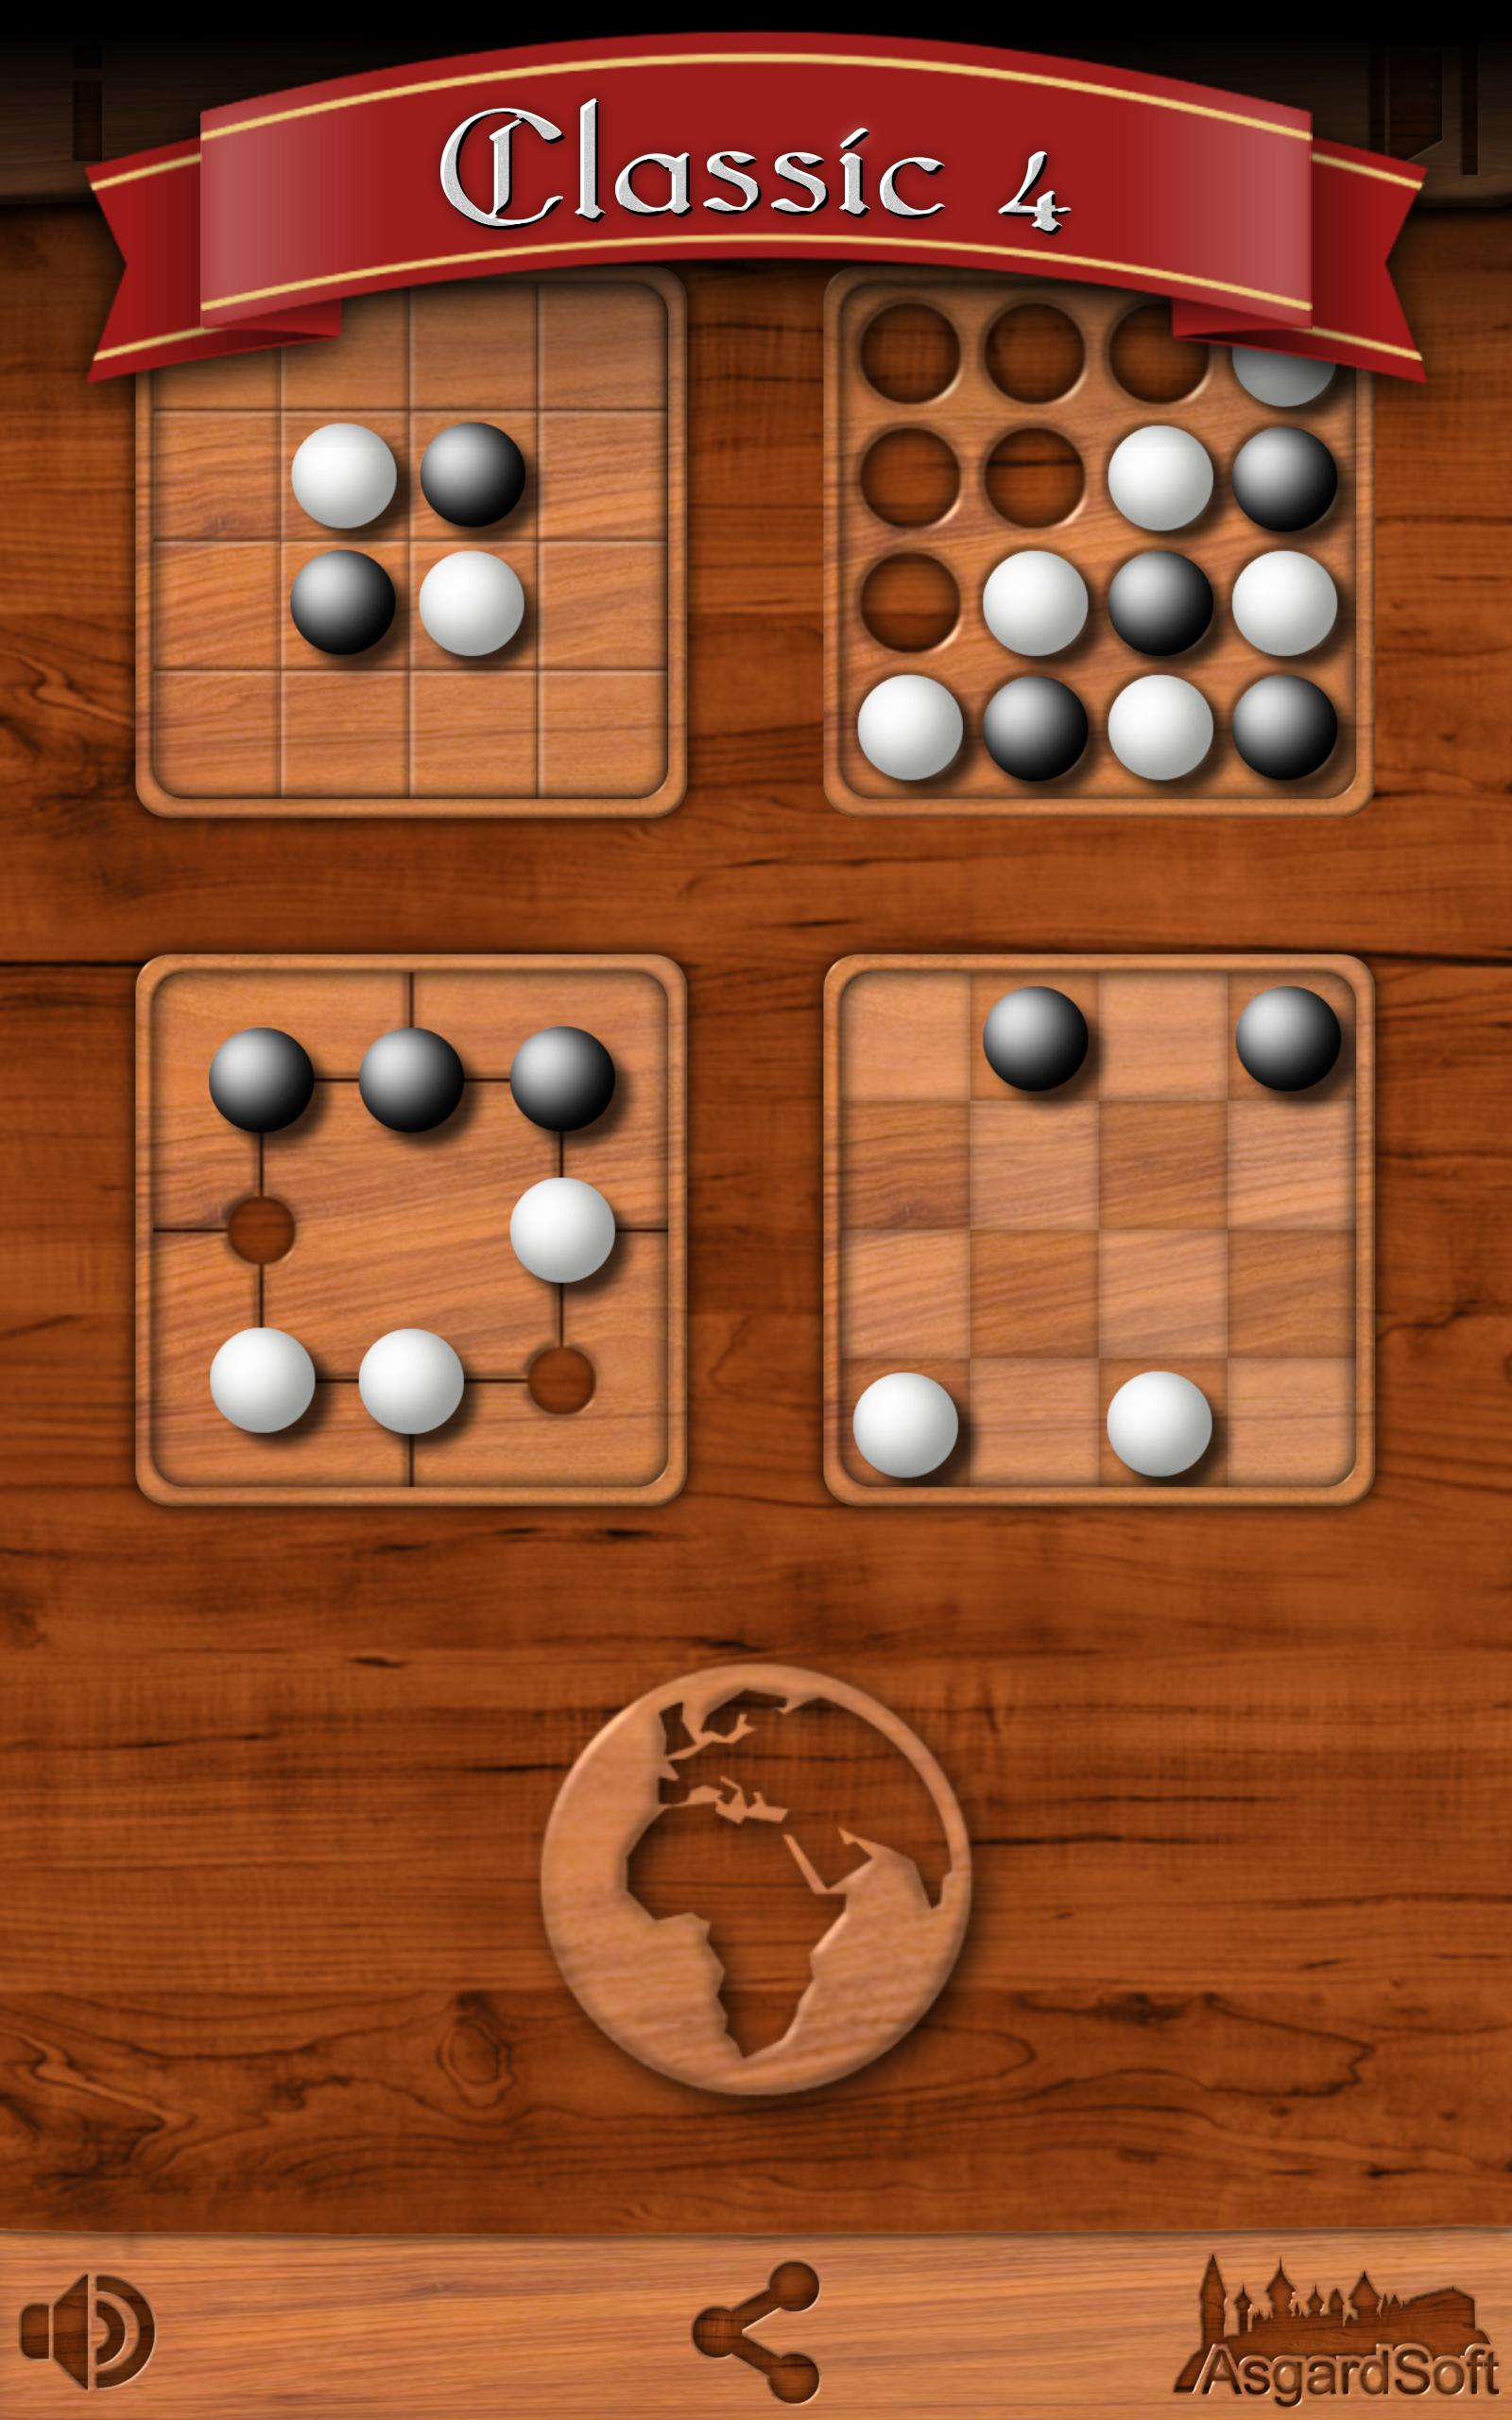 Free Classic 4 - The famous board games 2.1.6 Screenshot 1